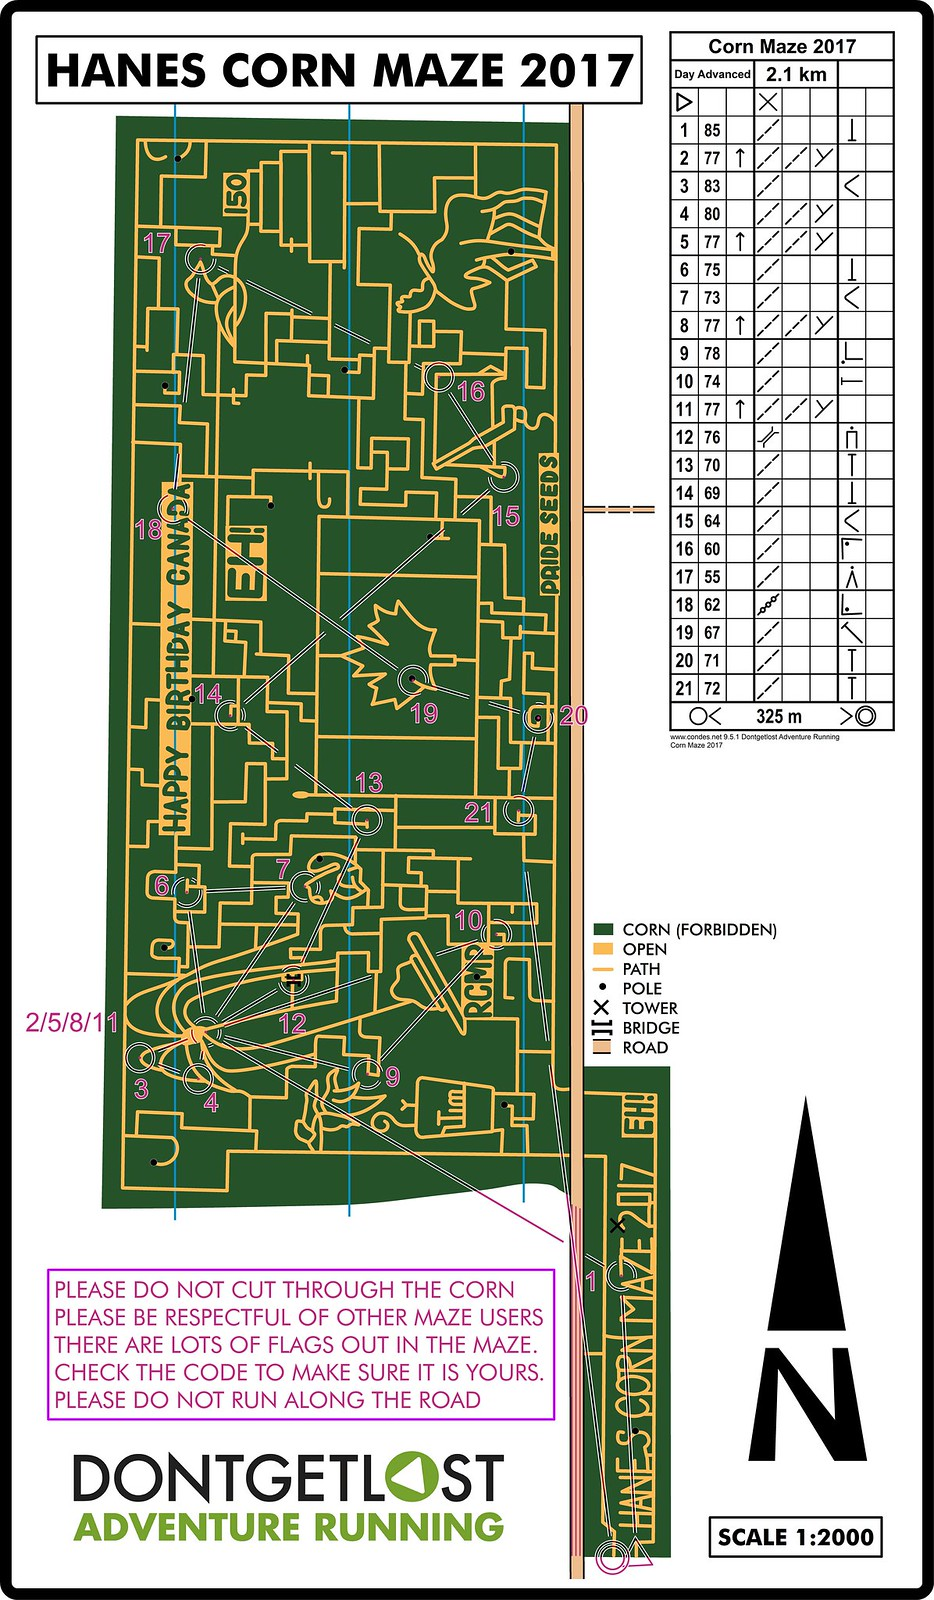 Day Advanced Corn Maze 2017 Map